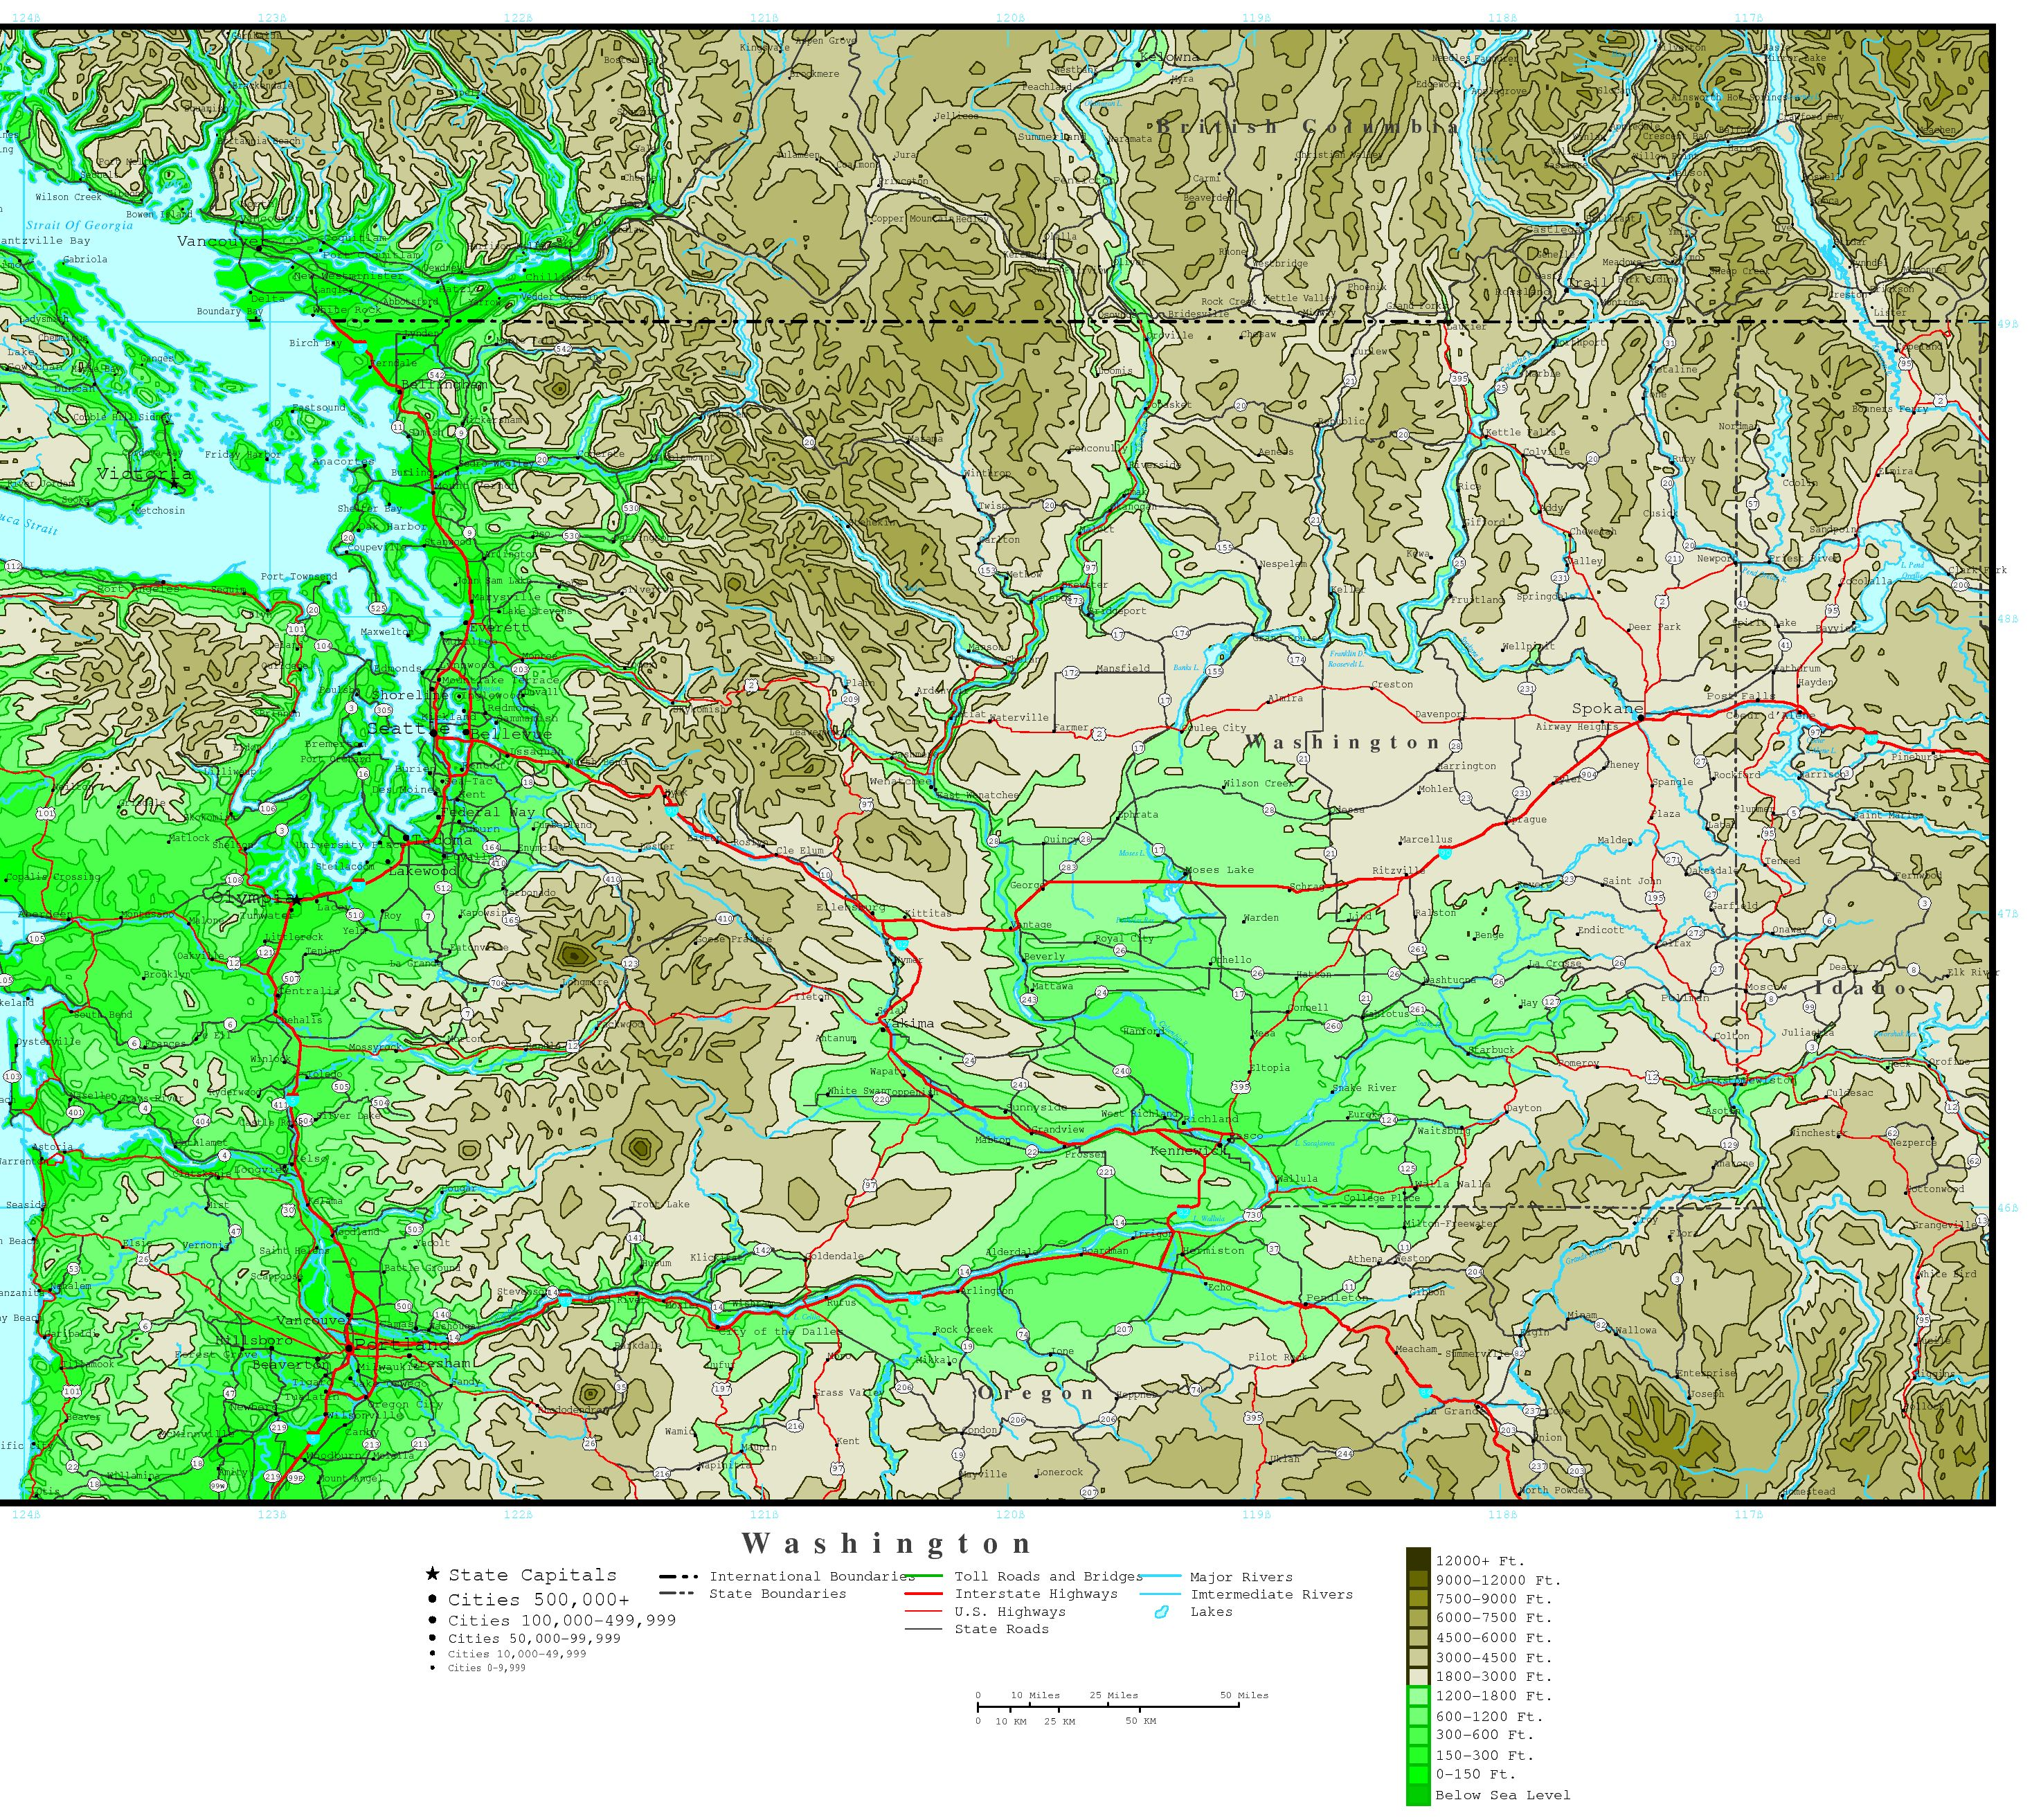 Washington Elevation Map on seattle city limits map, united states map, downtown seattle map, st. louis map, austin texas map, seattle wa, seattle neighborhood map, mount rainier map, spanaway washington map, oregon map, washington state map, usa map, city of seattle boundary map, lynnwood washington map, puget sound washington map, georgetown seattle map, world map, tulsa oklahoma map, sequim washington map,